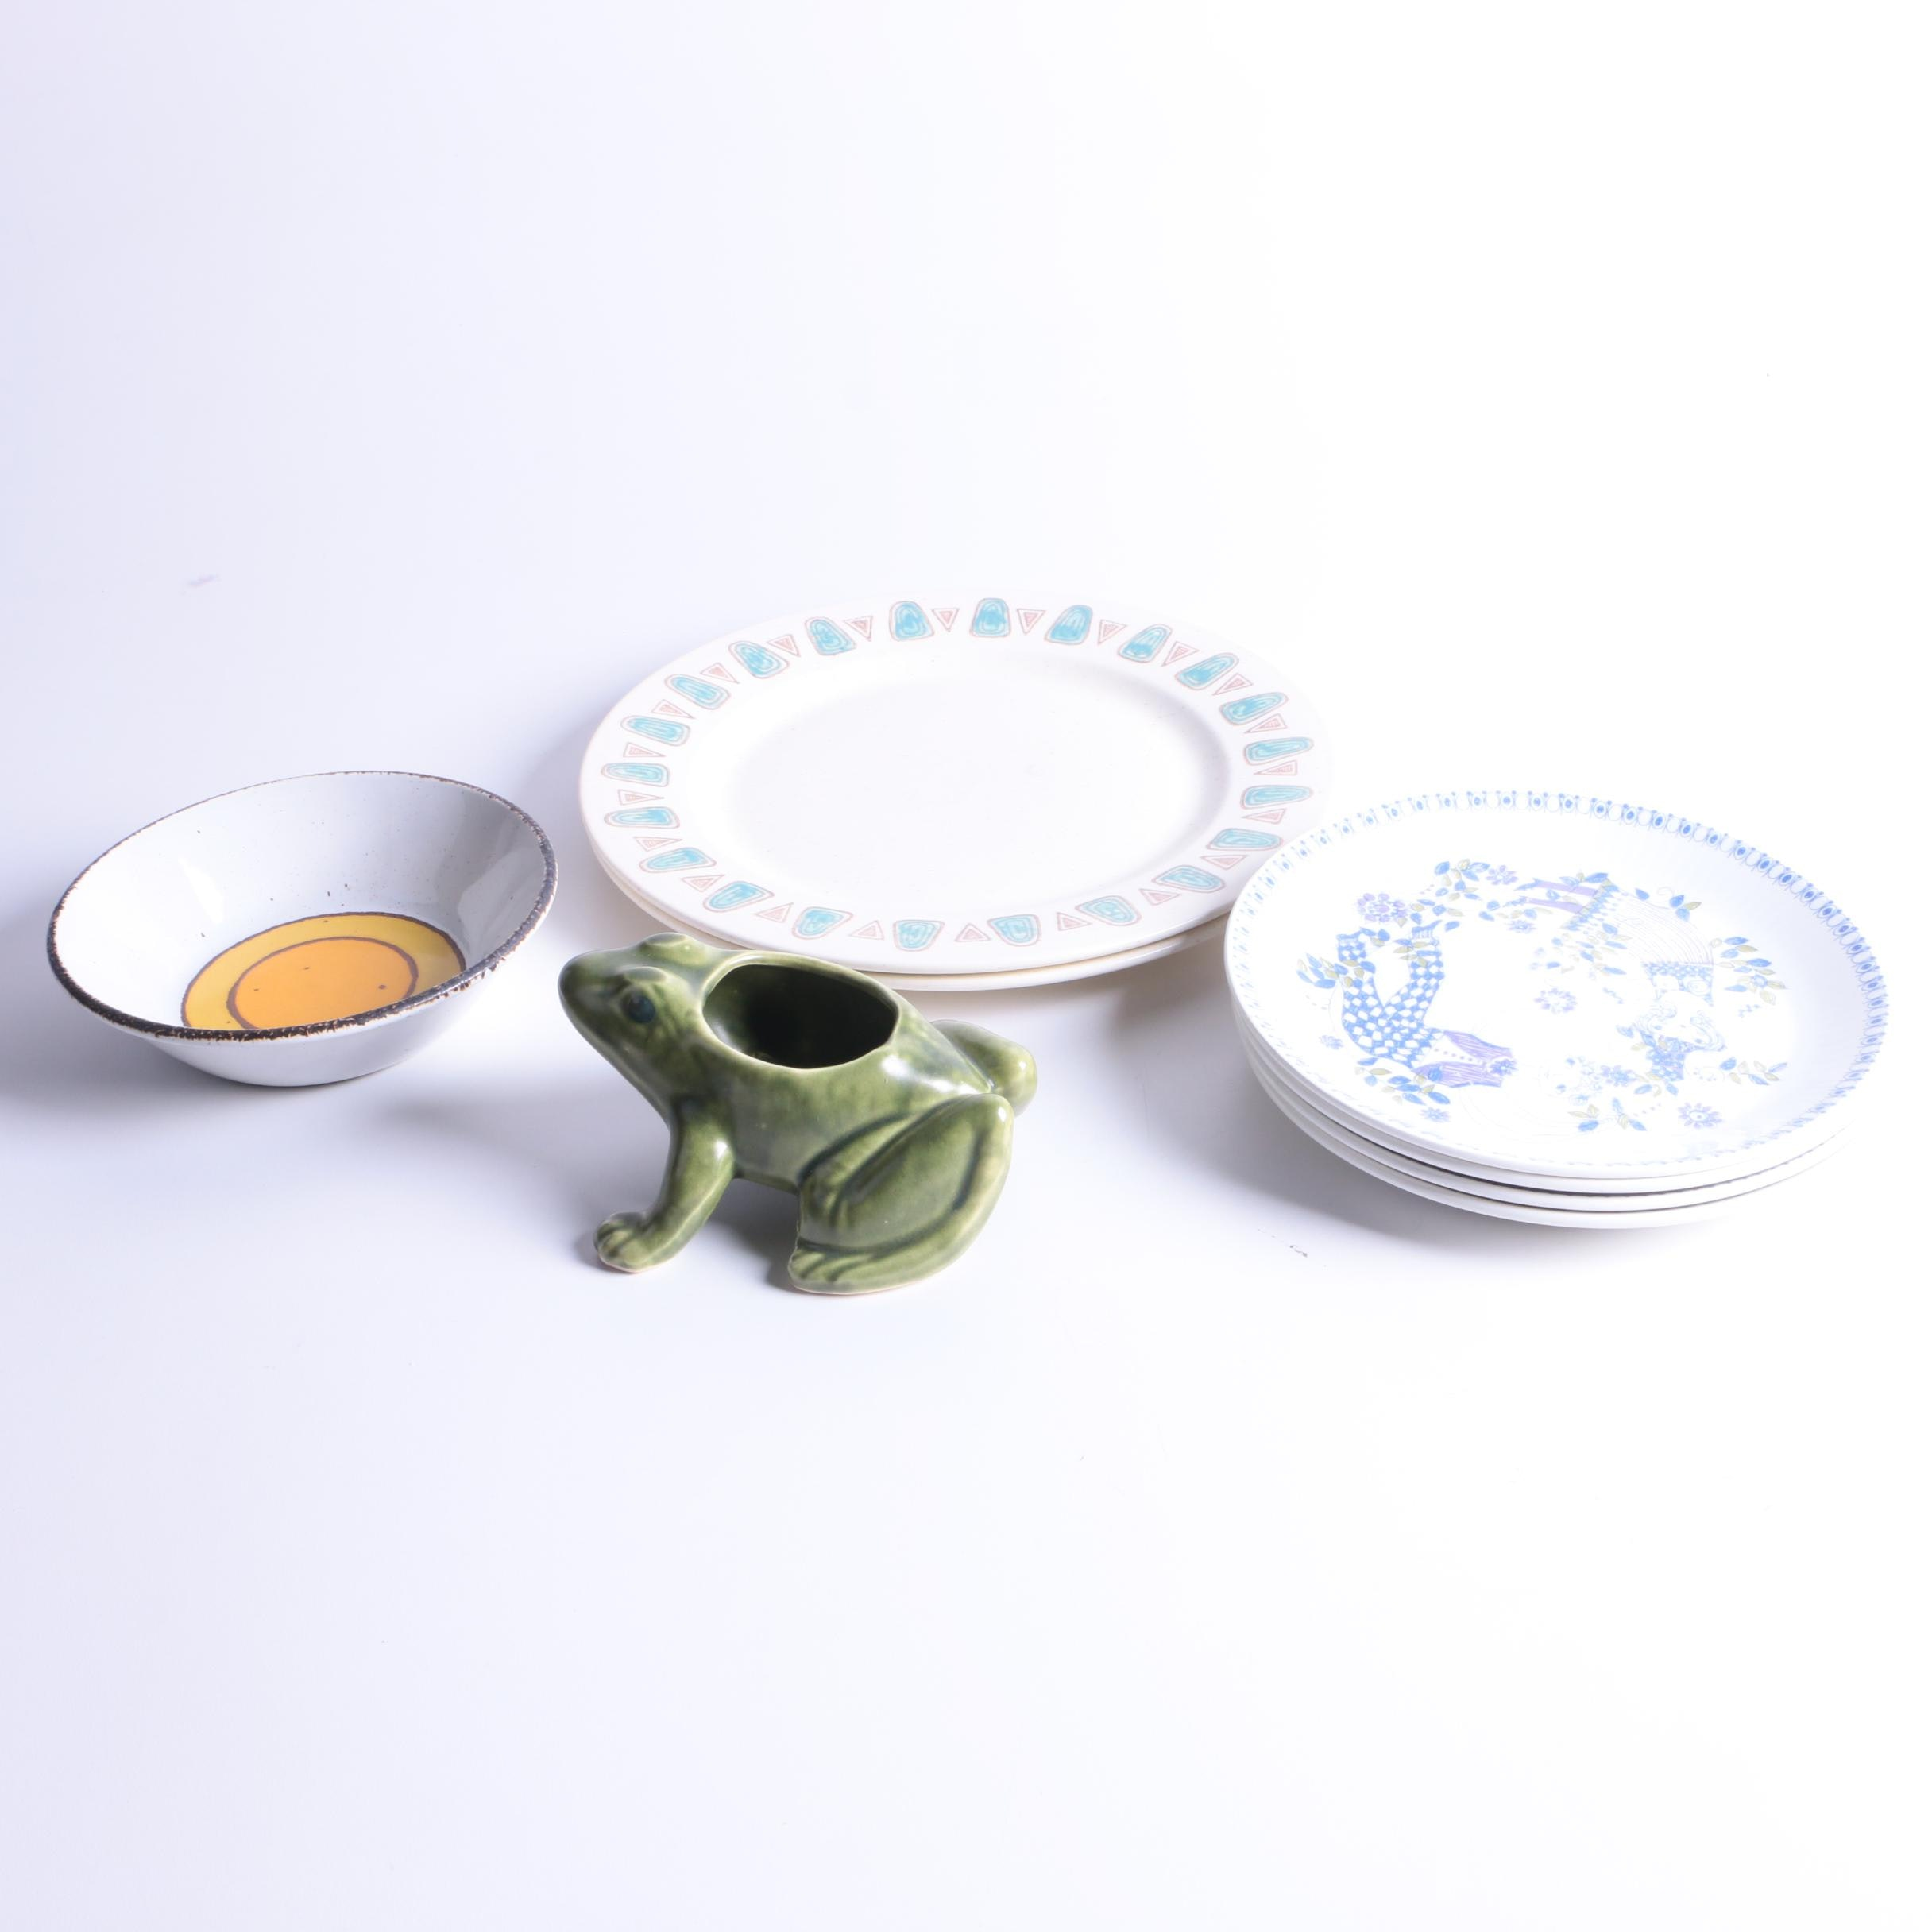 Stoneware and Porcelain Tableware and Decor including  Figgjo